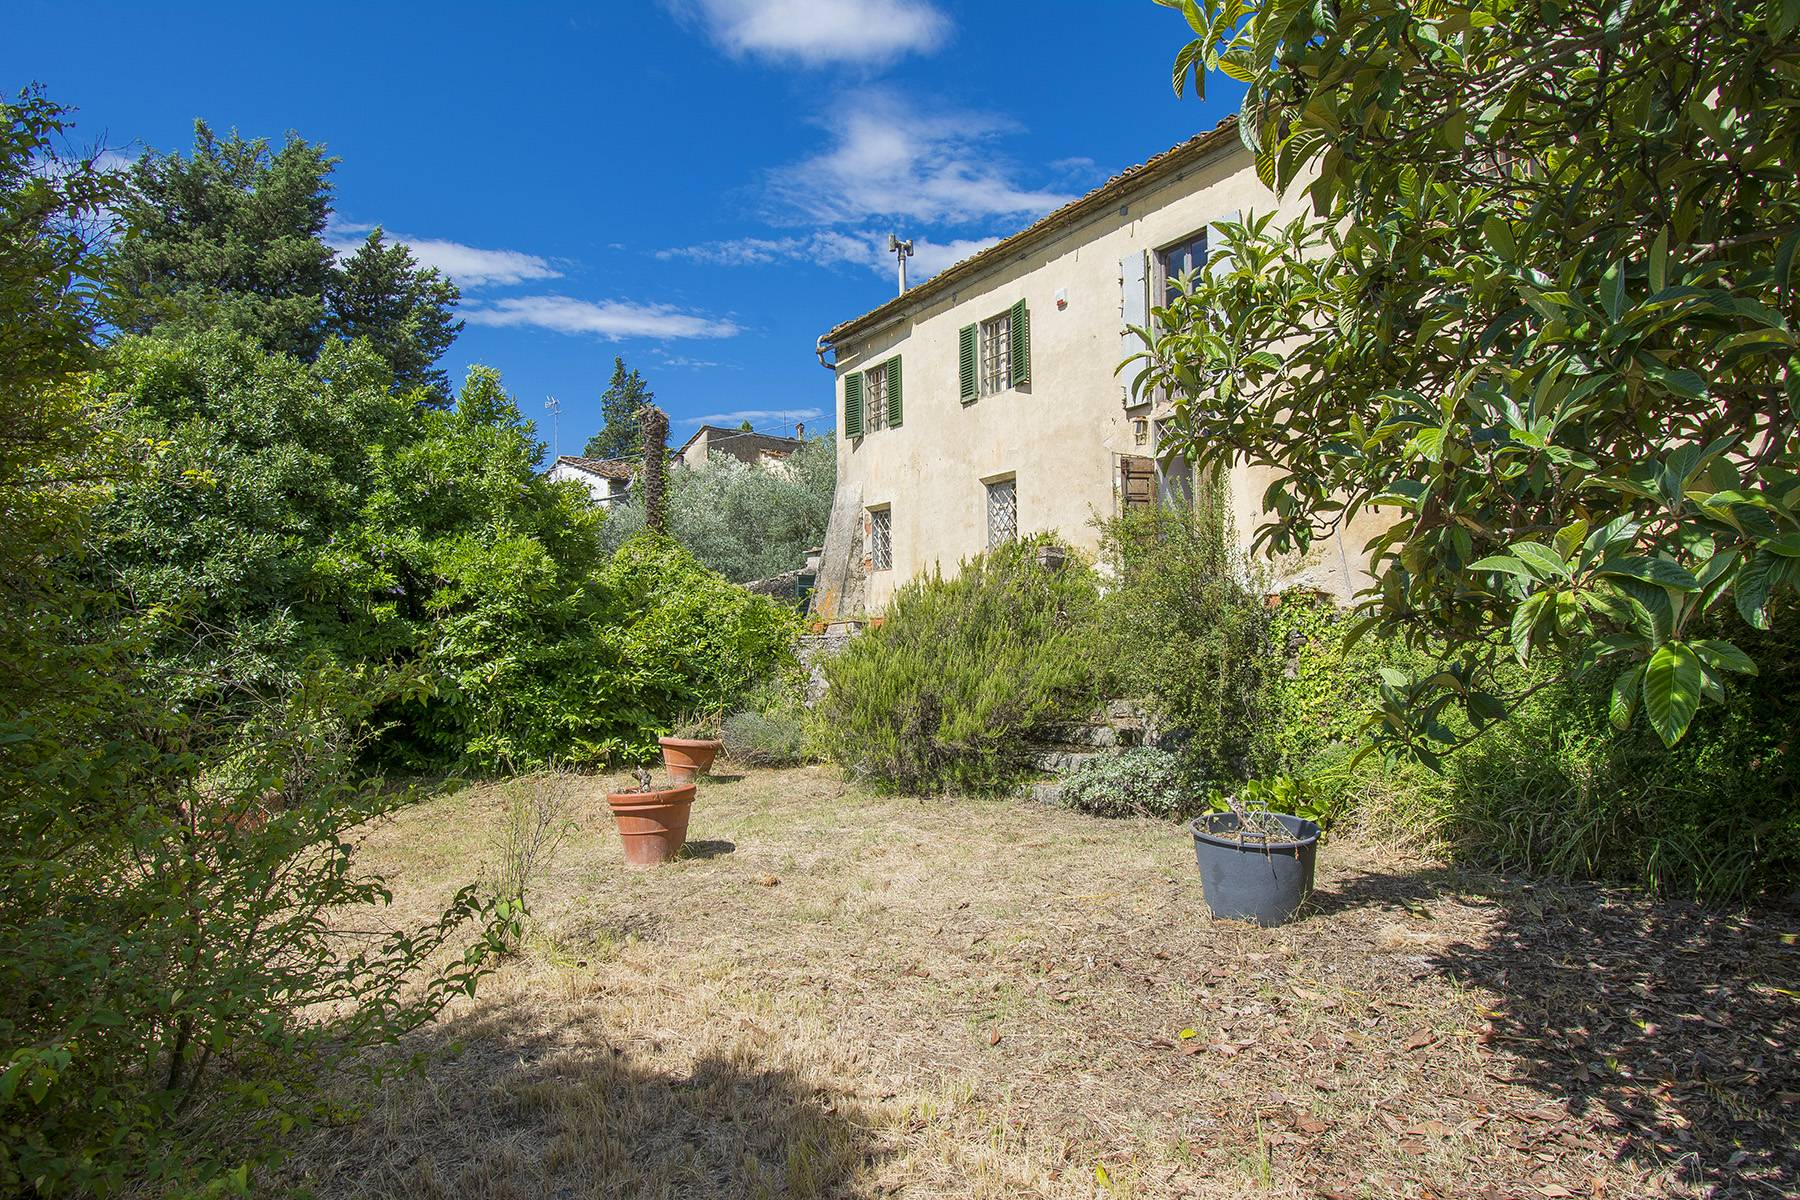 Charming farmhouse with a Xth century parish church in the Pistoia countryside - 6